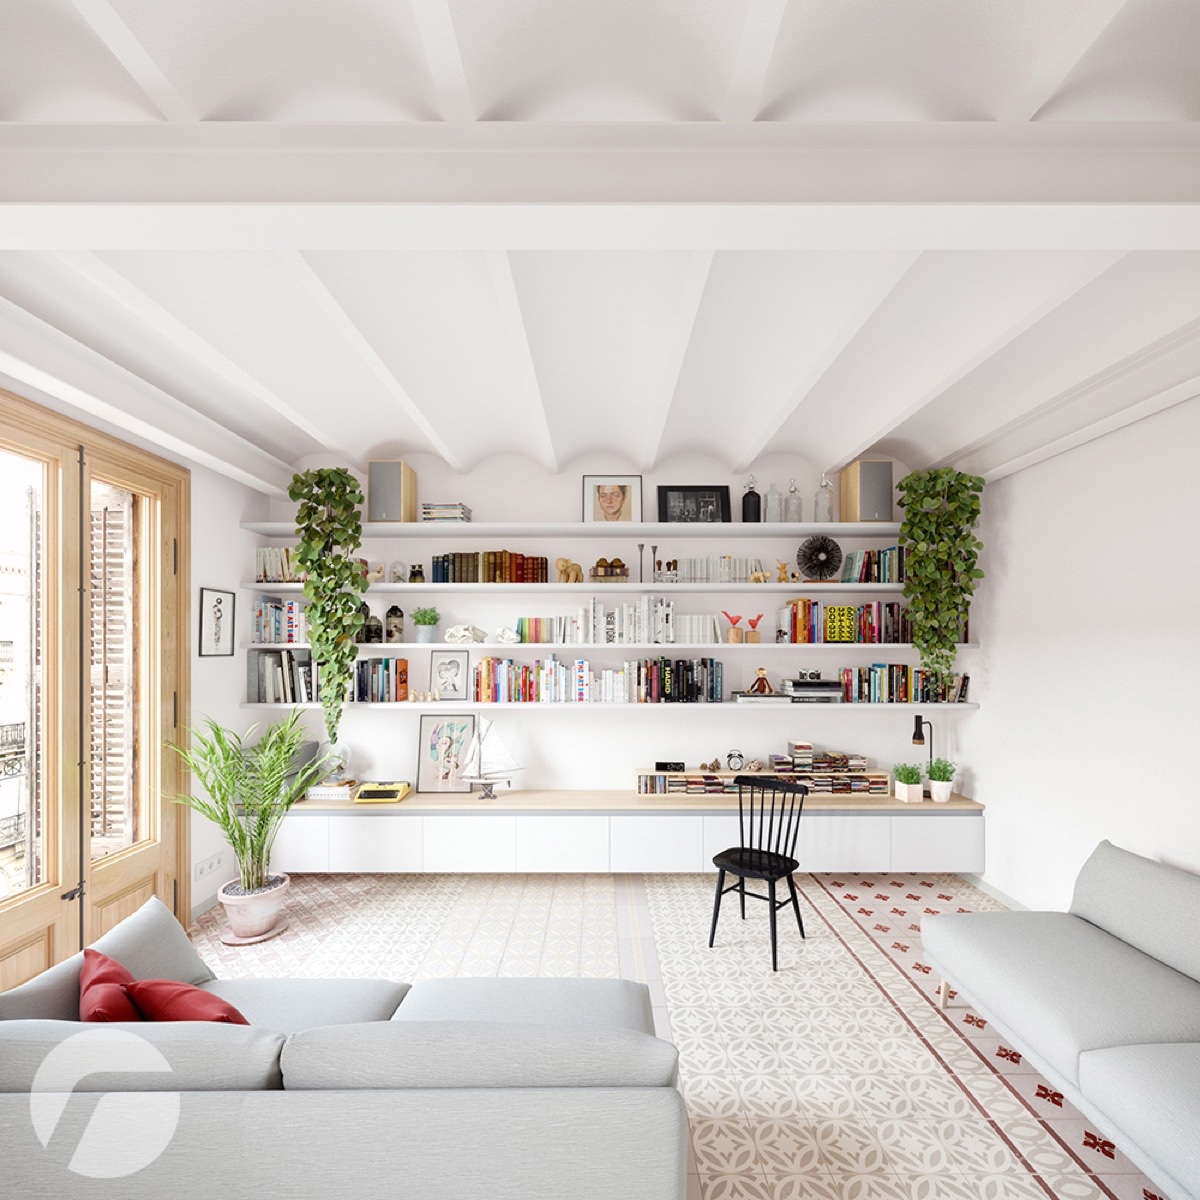 10 Stunning Apartments That Show Off The Beauty Of Nordic Interior Design. 10 Stunning Apartments That Show Off The Beauty Of Nordic Interior